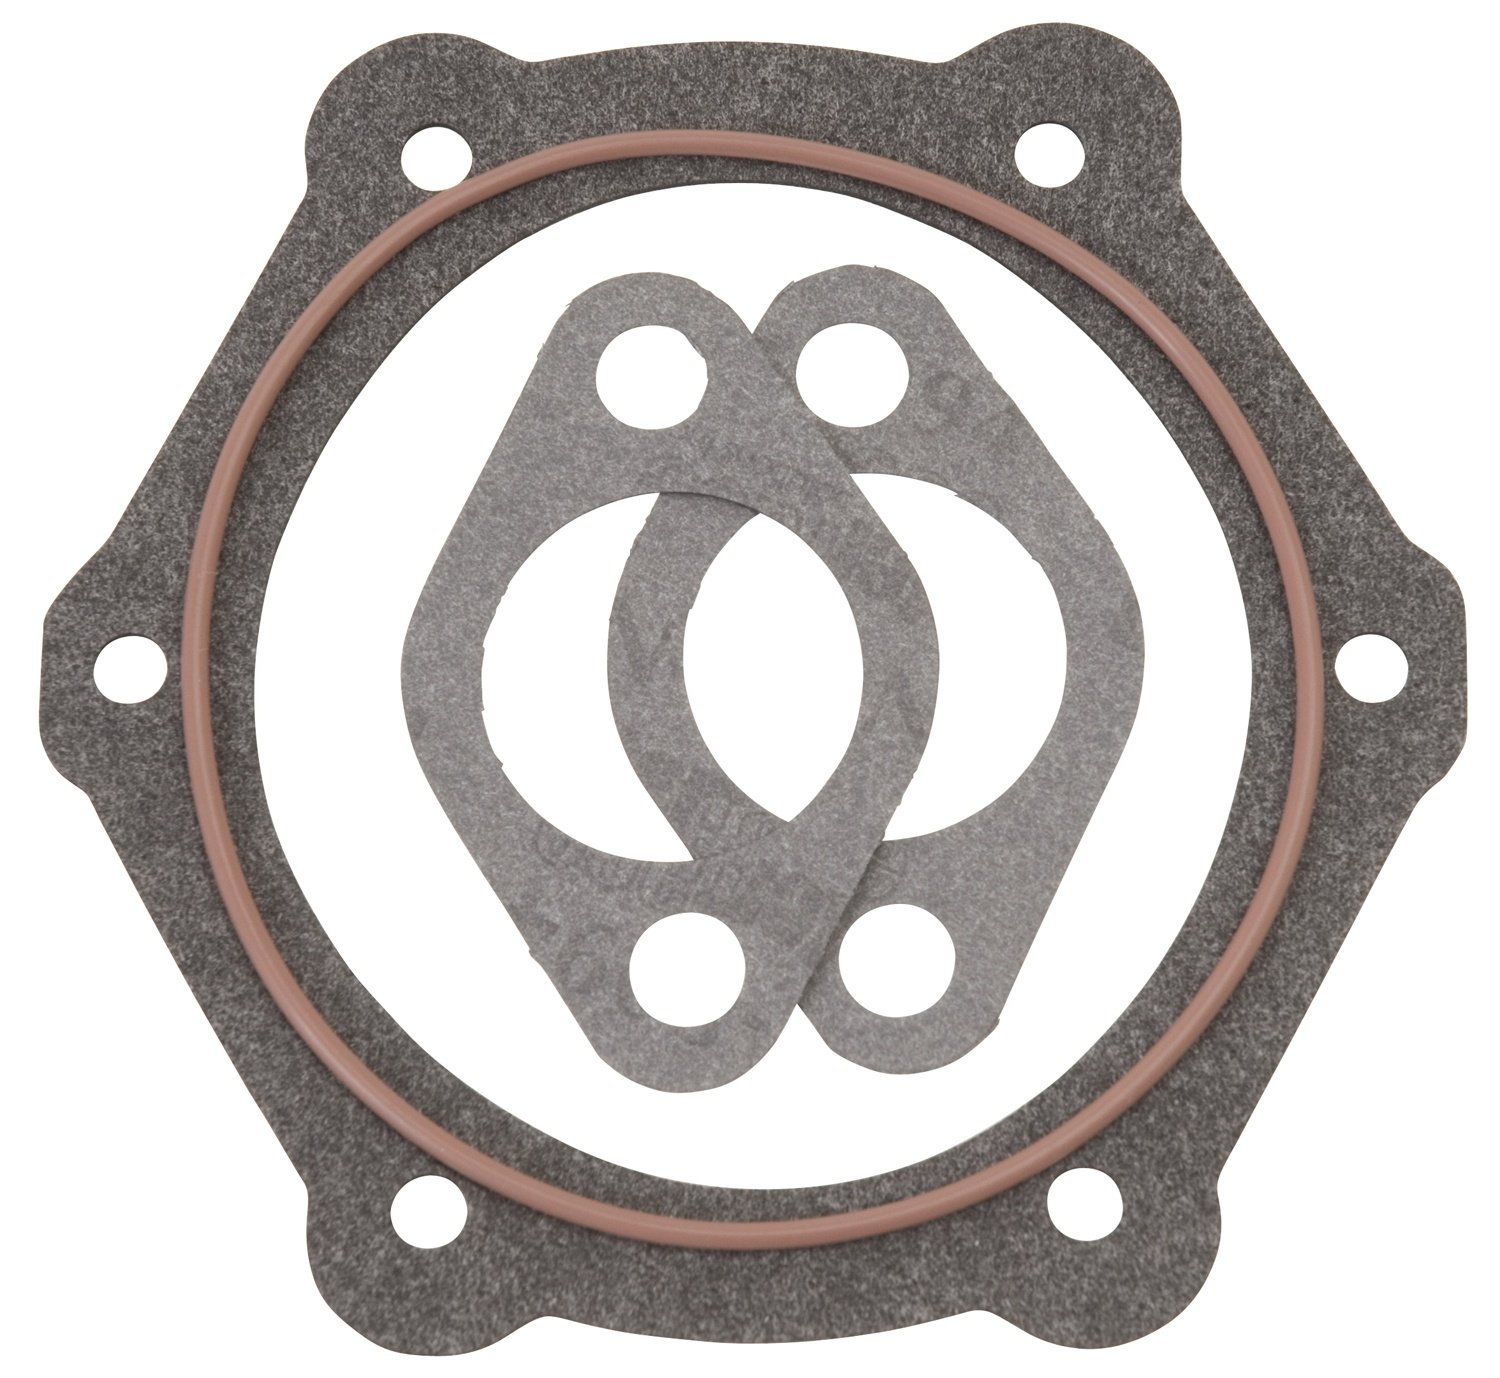 Edelbrock 7252 Water Pump Gasket Kit for Big Block Chevy